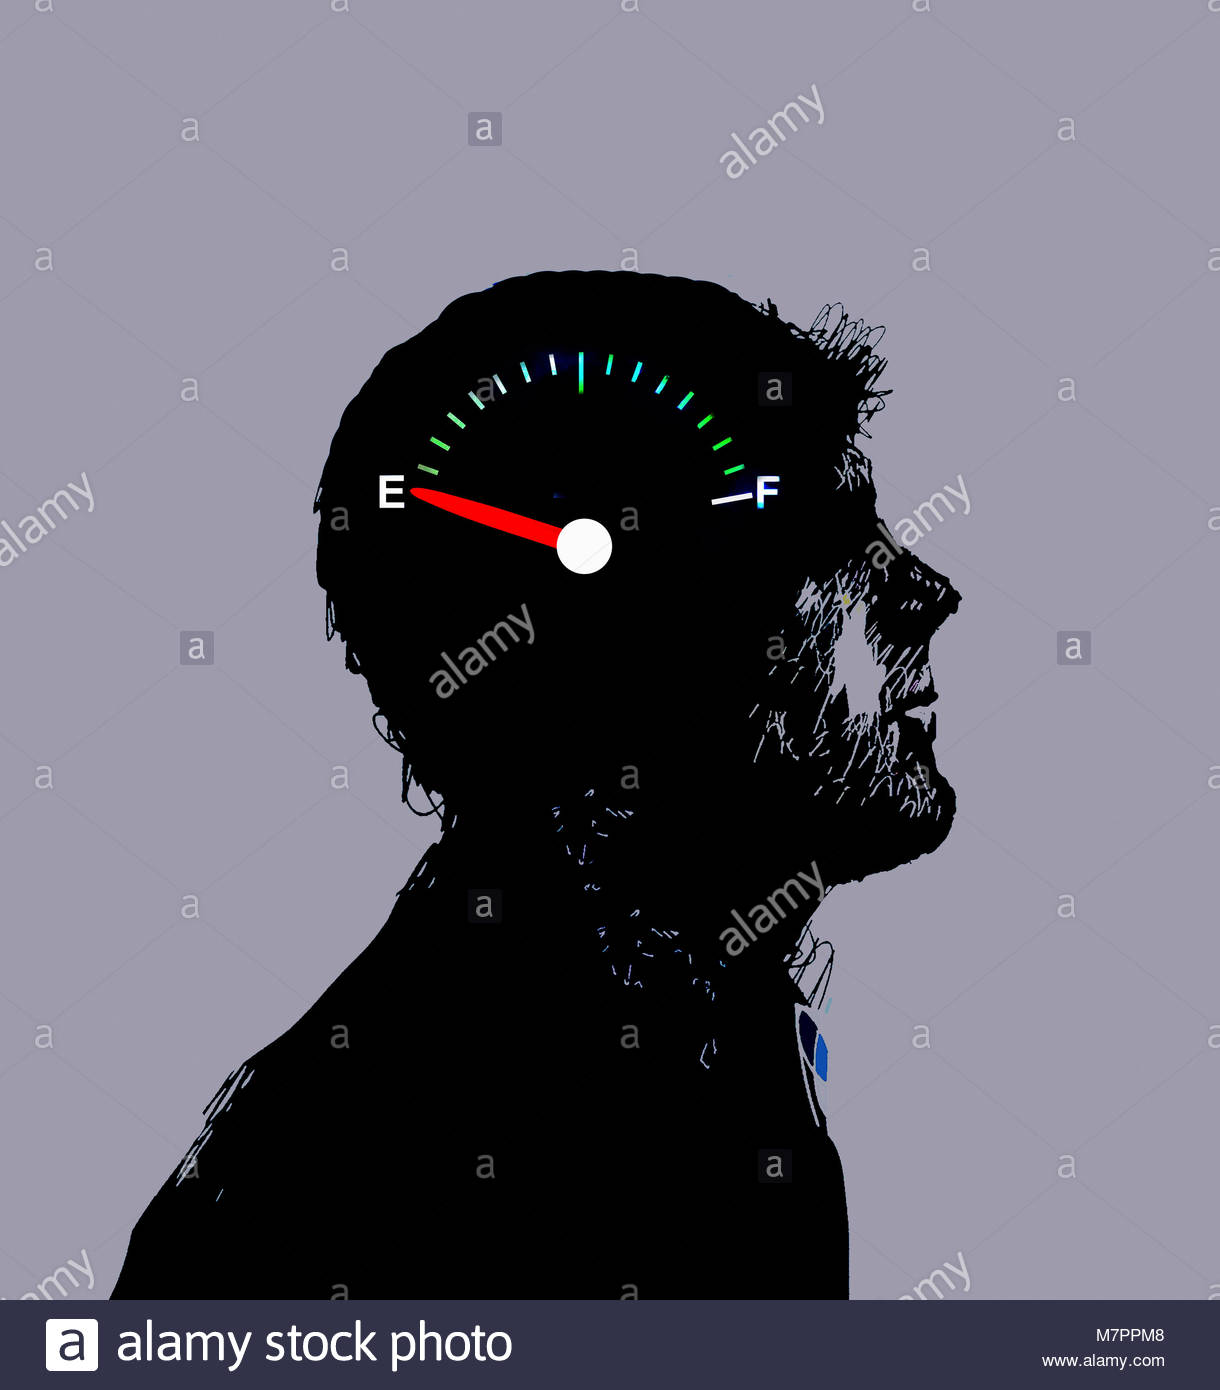 Gauge on empty inside of man's head - Stock Image